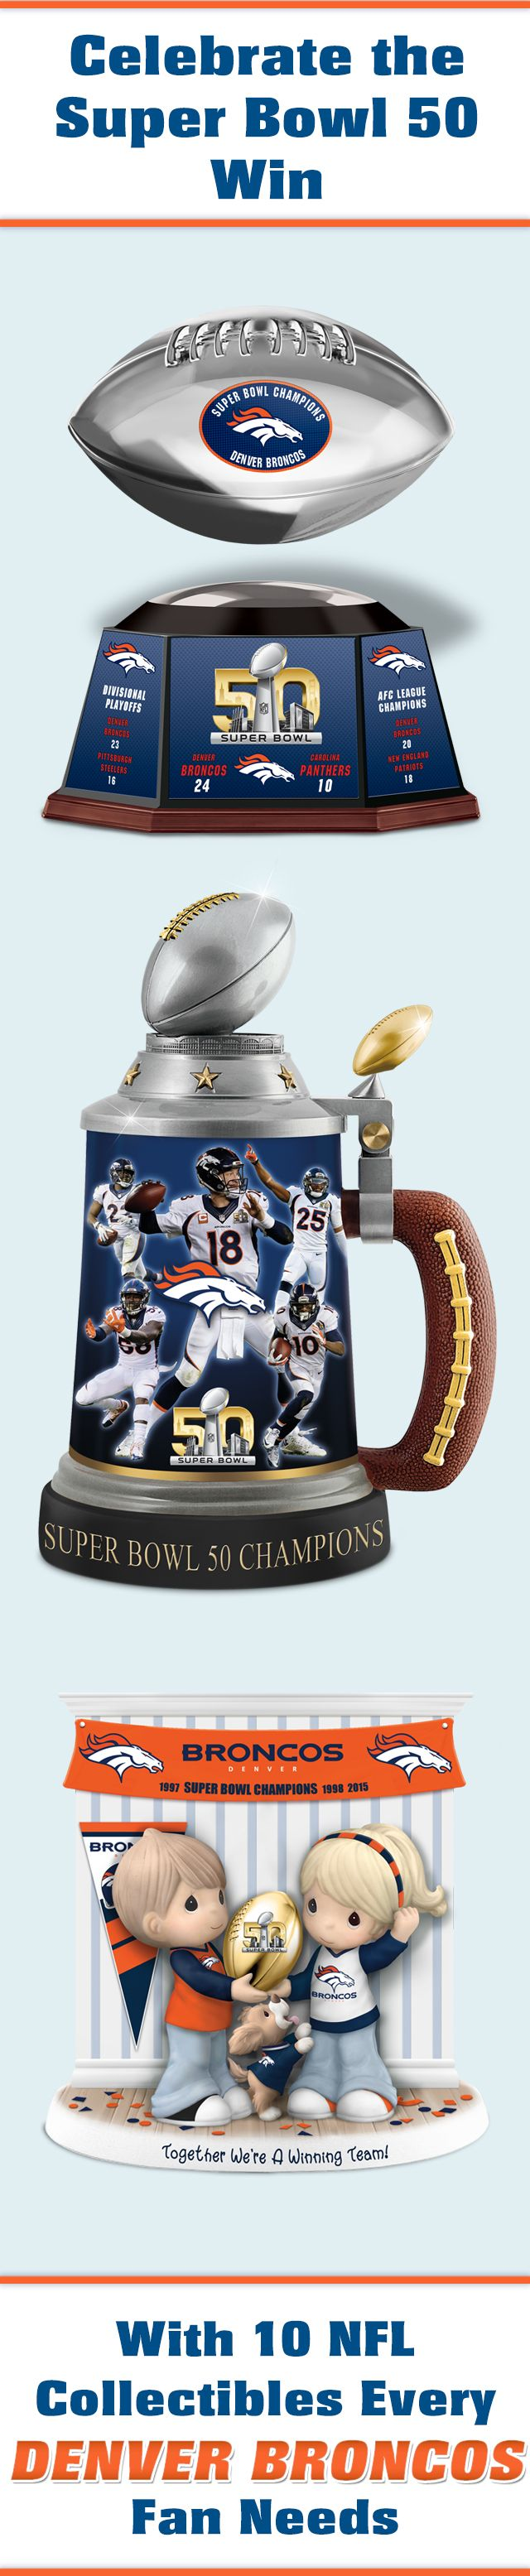 Celebrate your Super Bowl Champions in winning style. Shop and share these one-of-a-kind Broncos tributes: